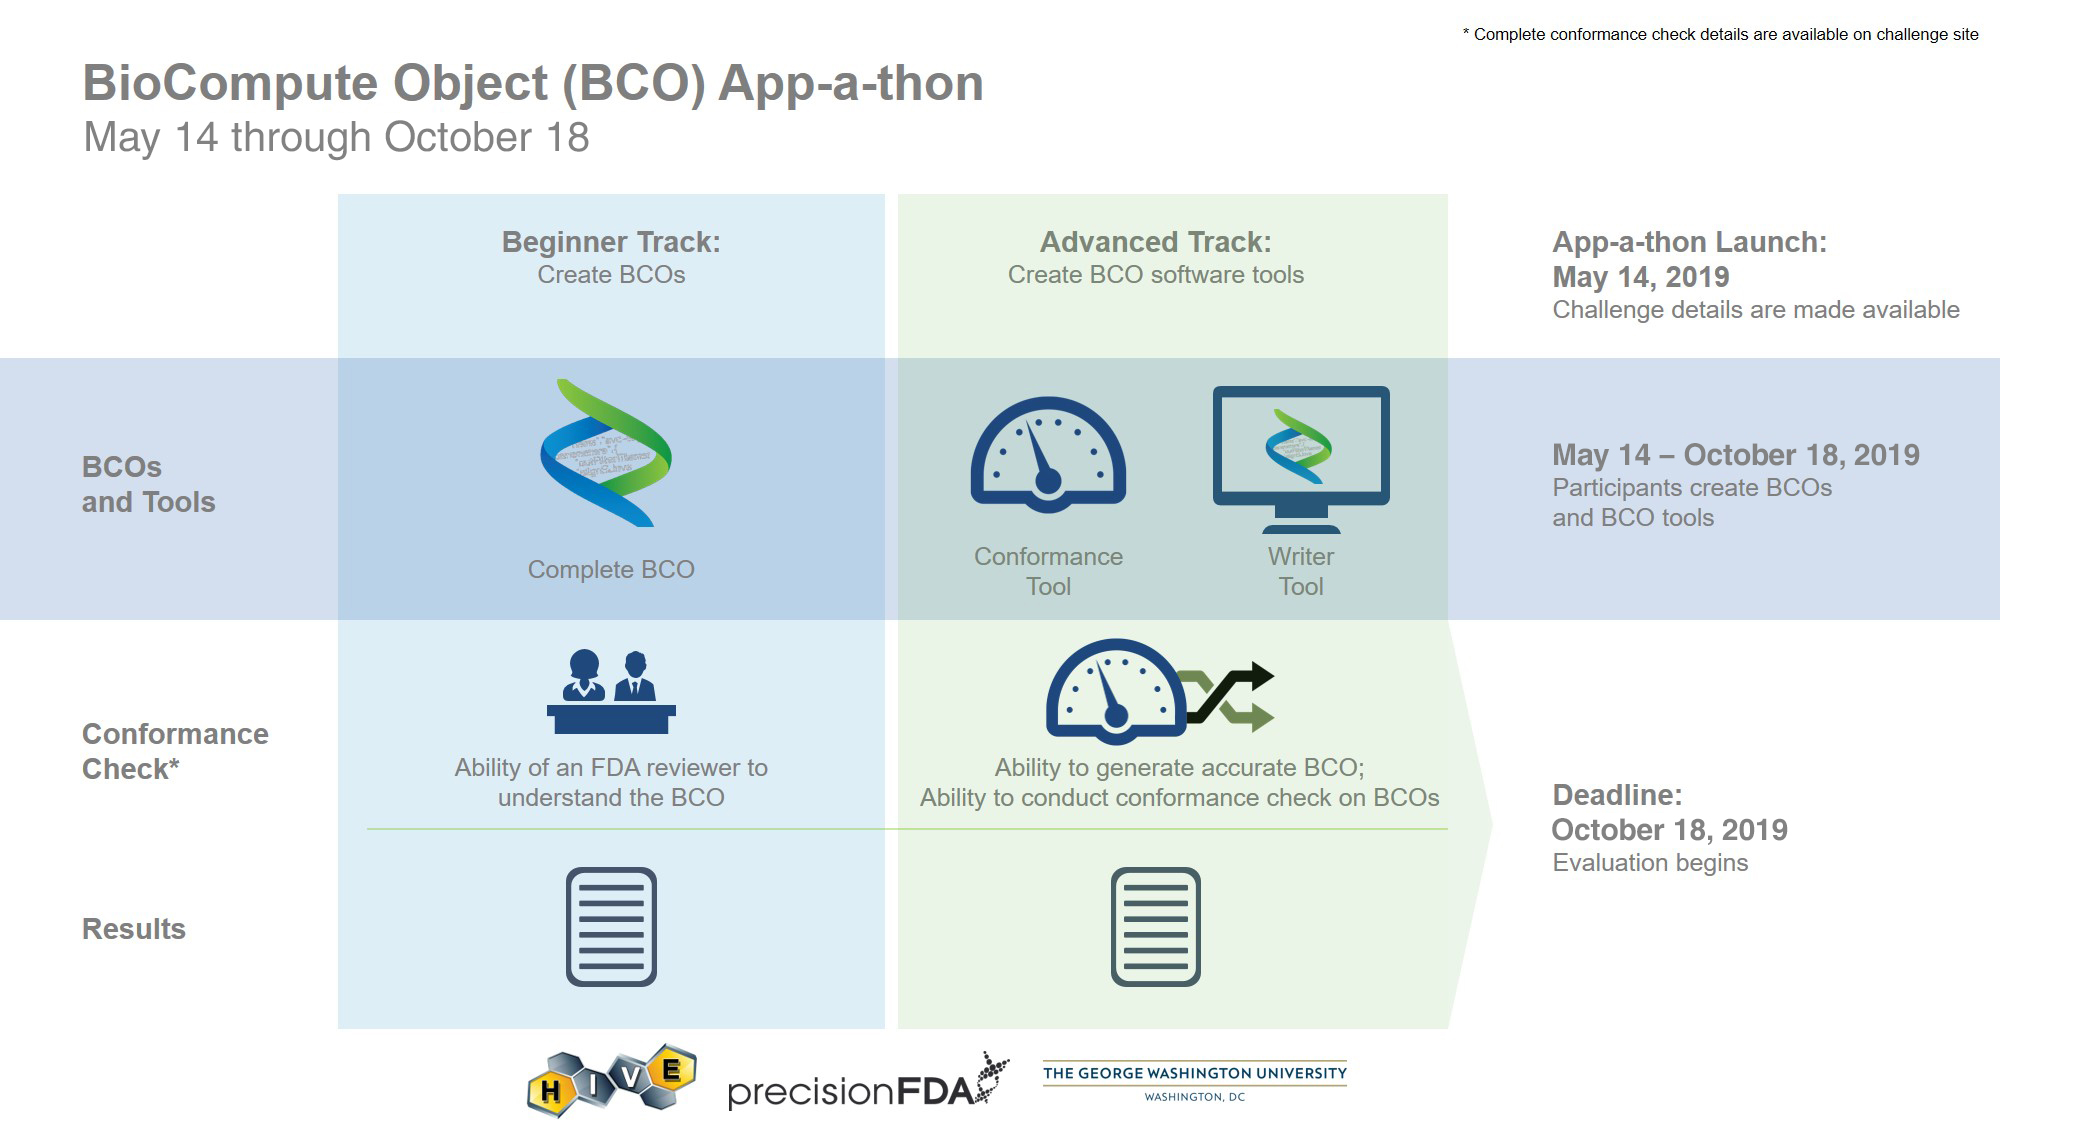 BioCompute Object (BCO) App-a-thon